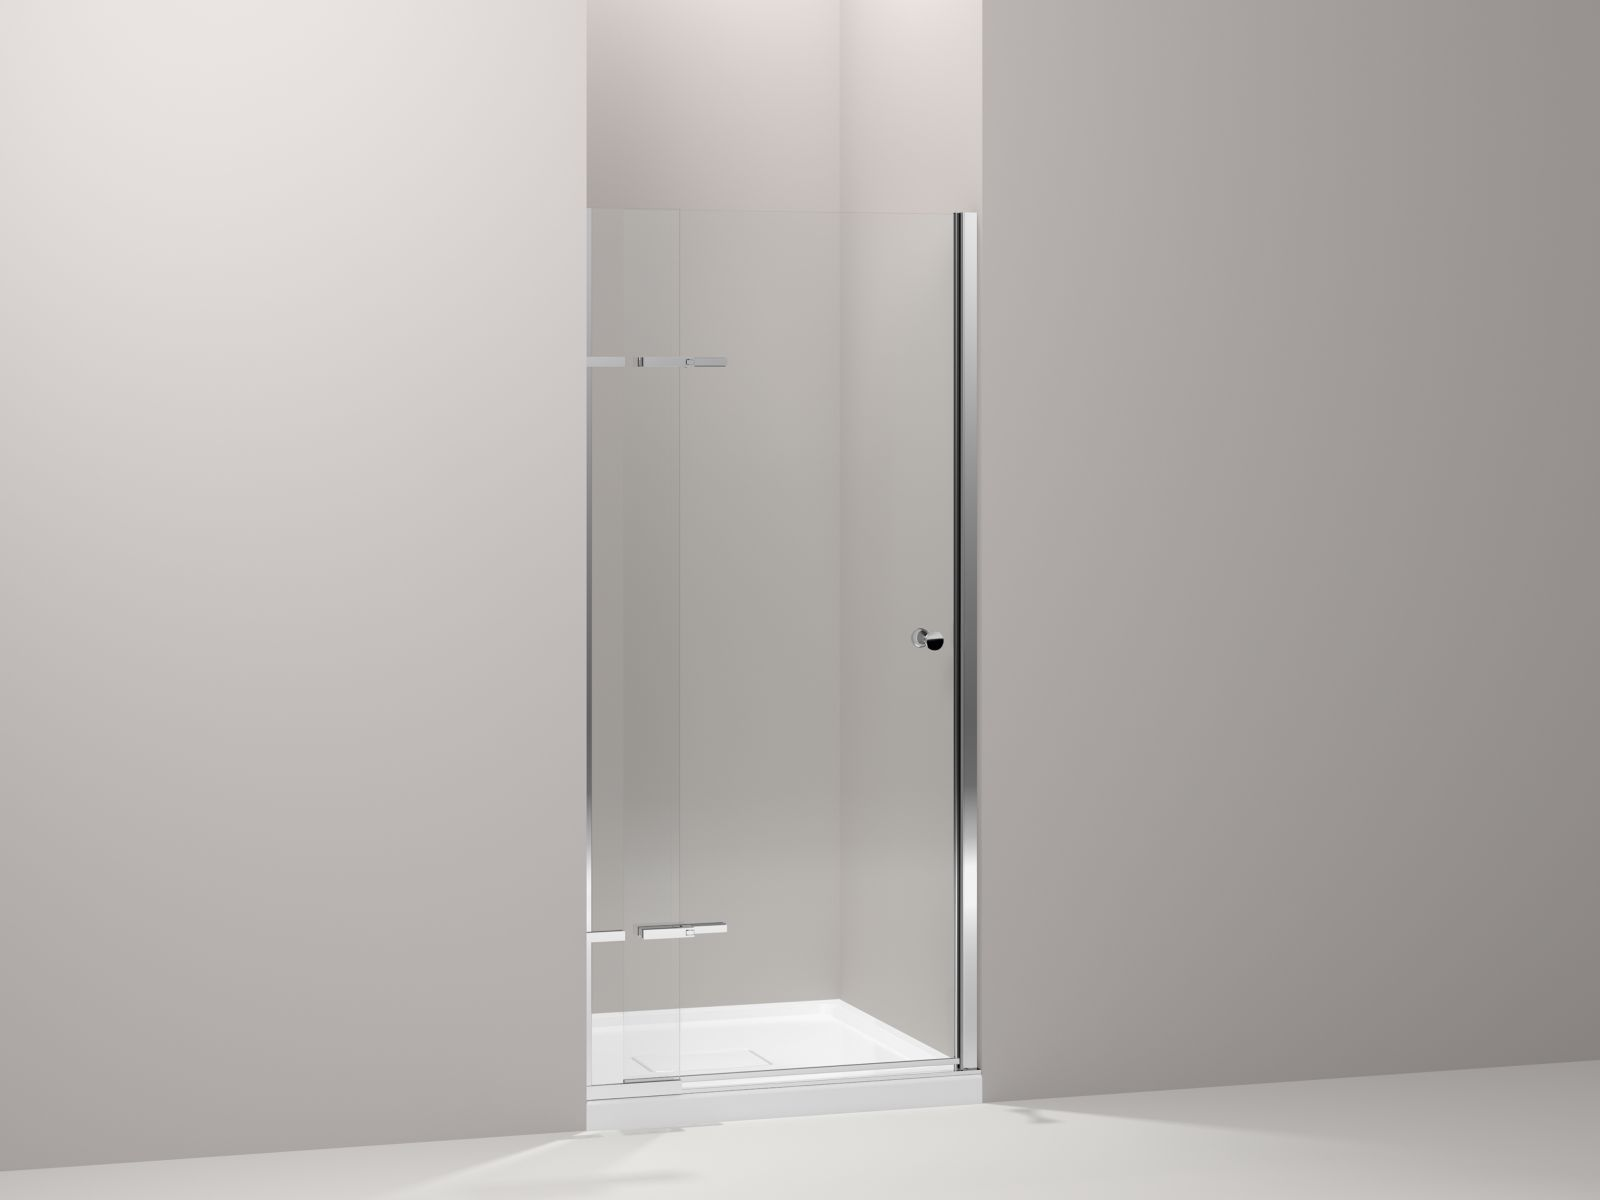 "Kohler Underline™ K-709033-L-SHP pivoting shower door, 69-1/2"" x 31-1/4 - 36"" W, with adjustable hinges and 1/4"" thick Crystal Clear glass Bright Polished Silver"